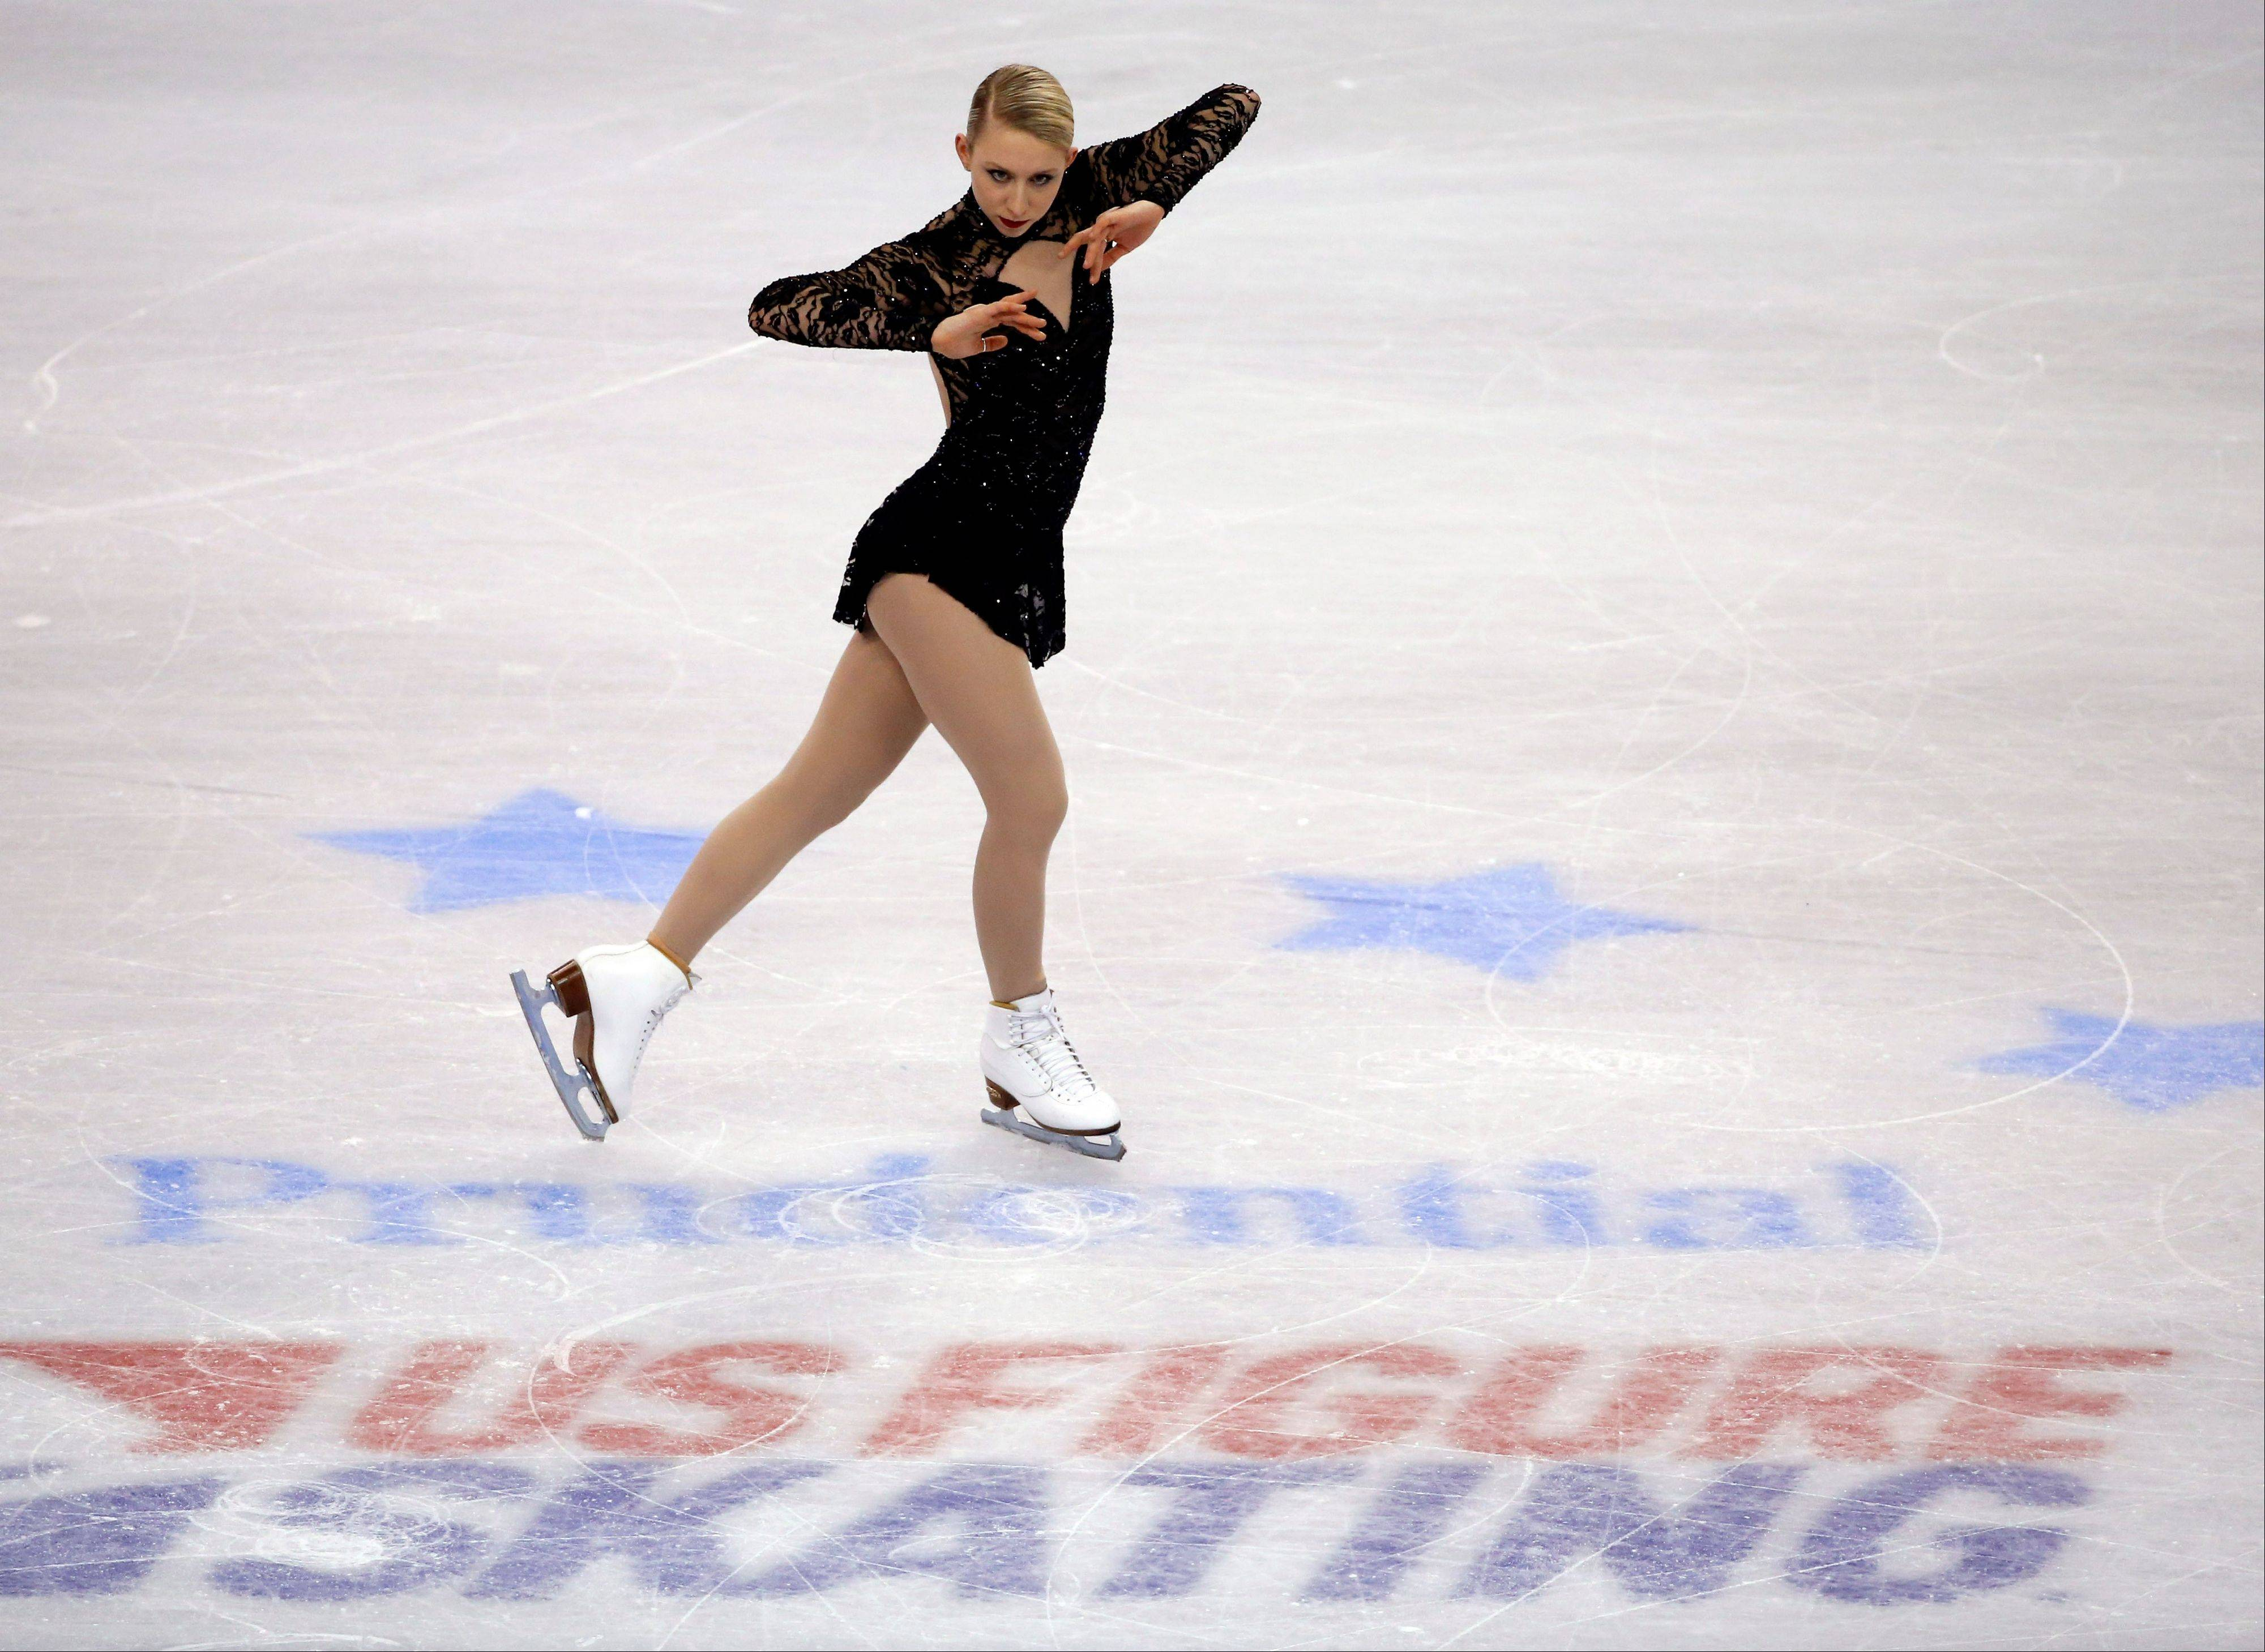 Agnes Zawadzki was in 13th position heading into the women's free skate at the U.S. Figure Skating Championships in Boston on Saturday.